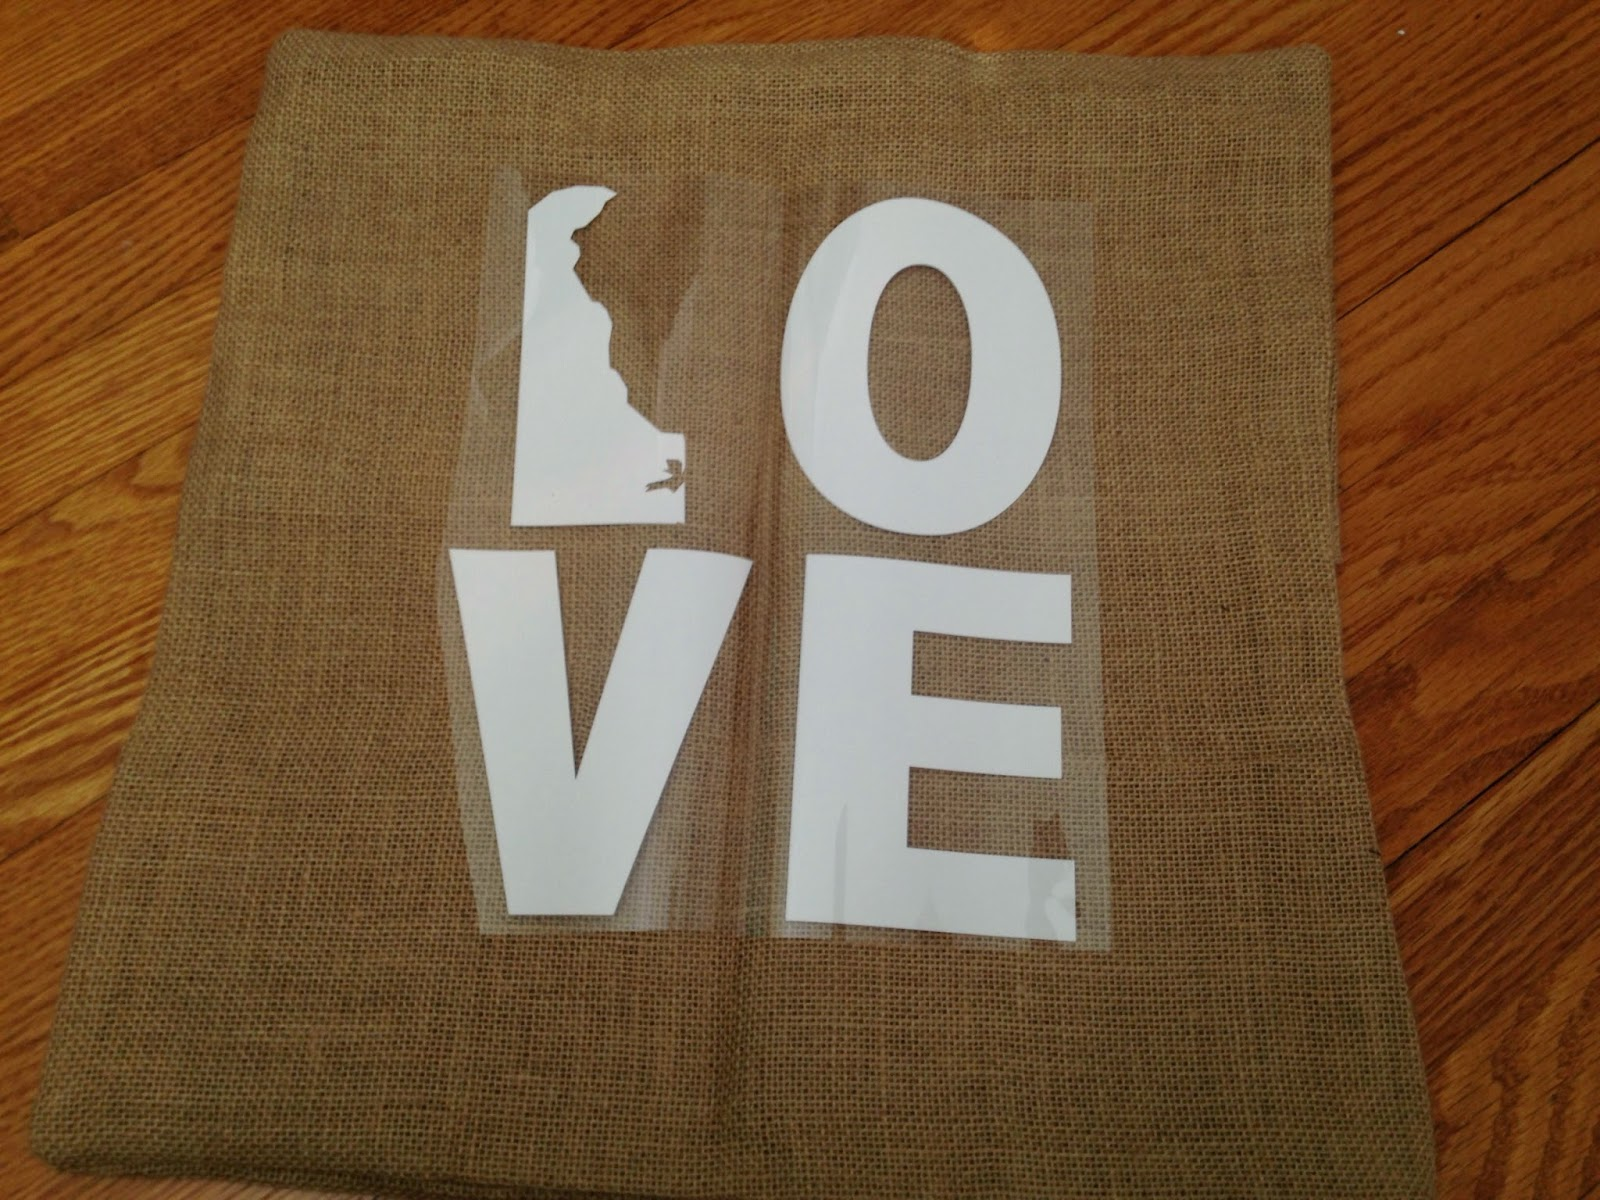 Silhouette crafters, heat transfer vinyl, HTV, center design, burlap pillow